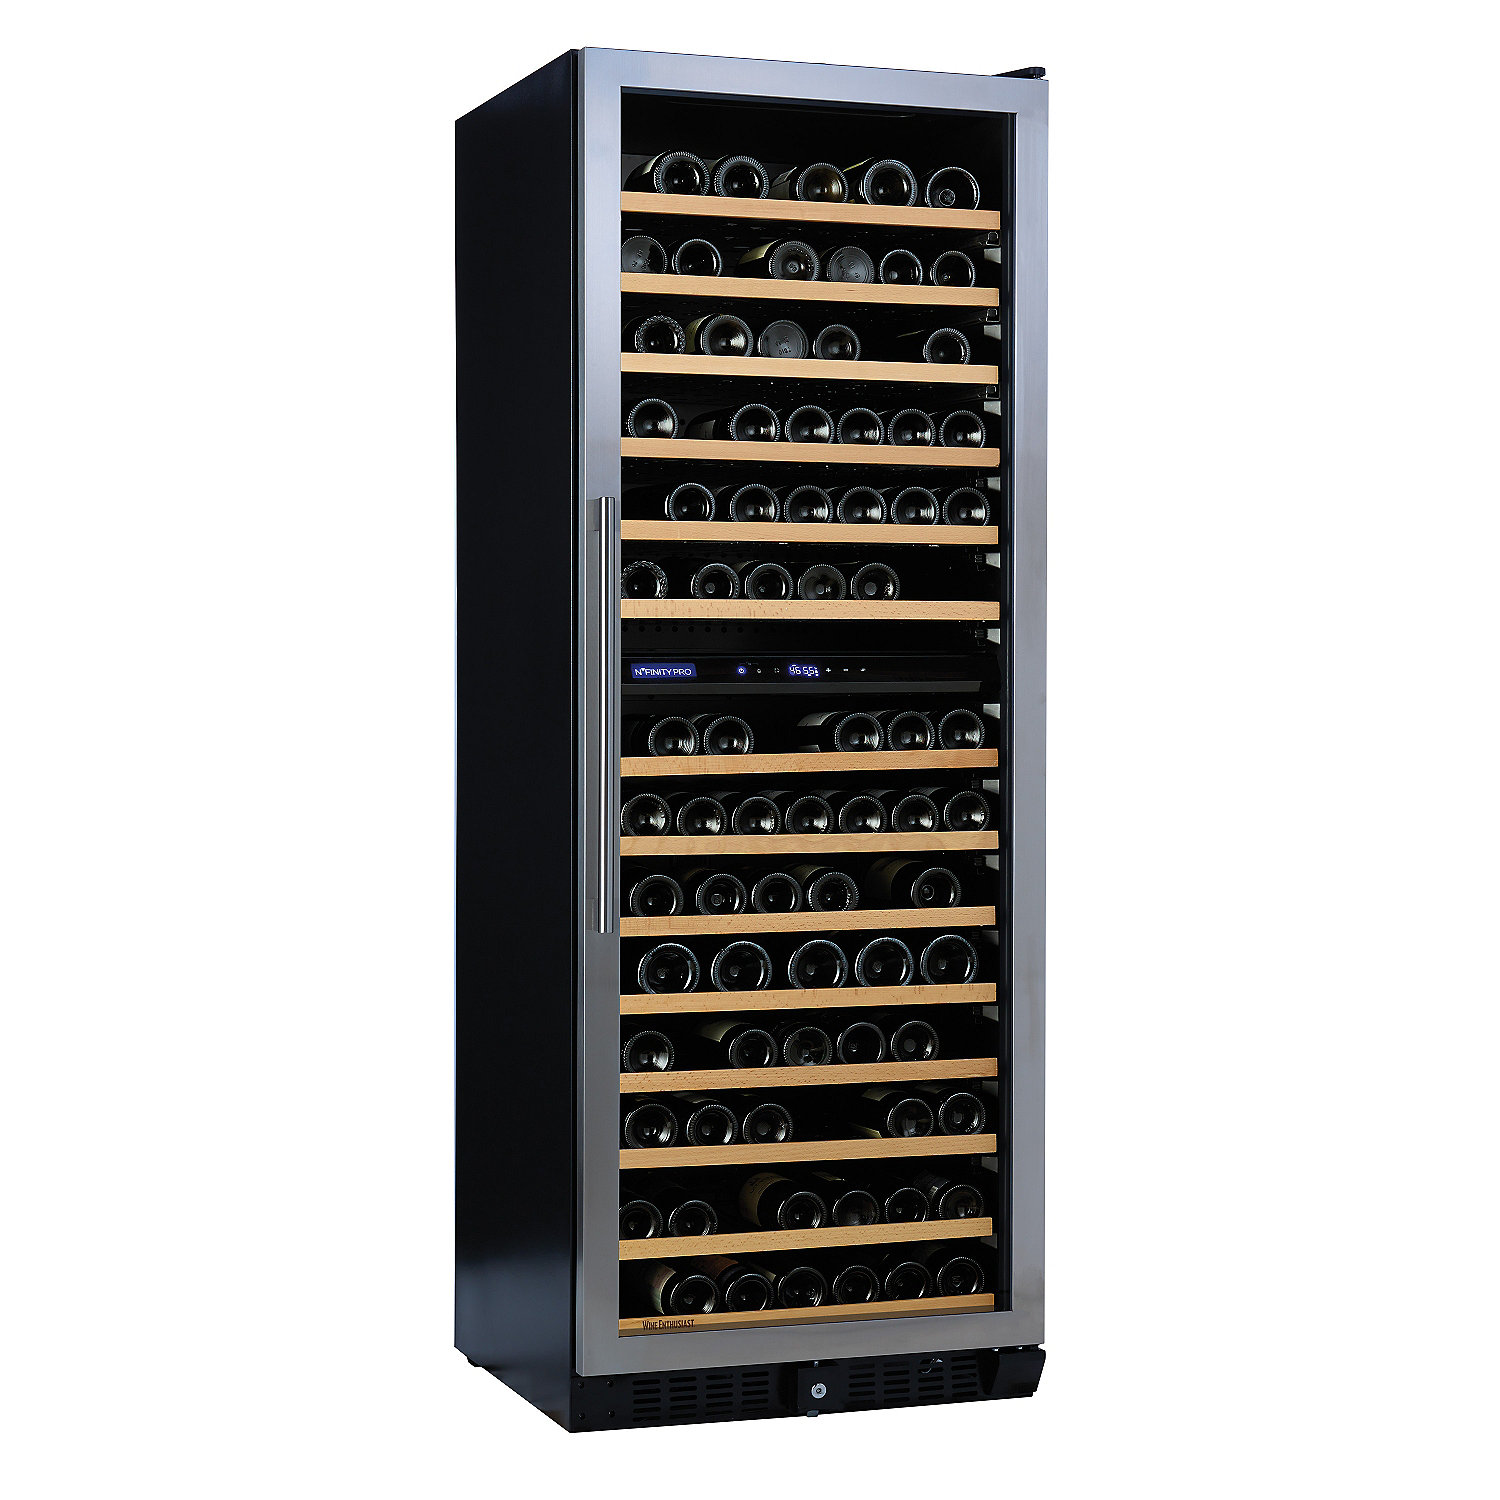 N'FINITY PRO LX Dual Zone Wine Cellar